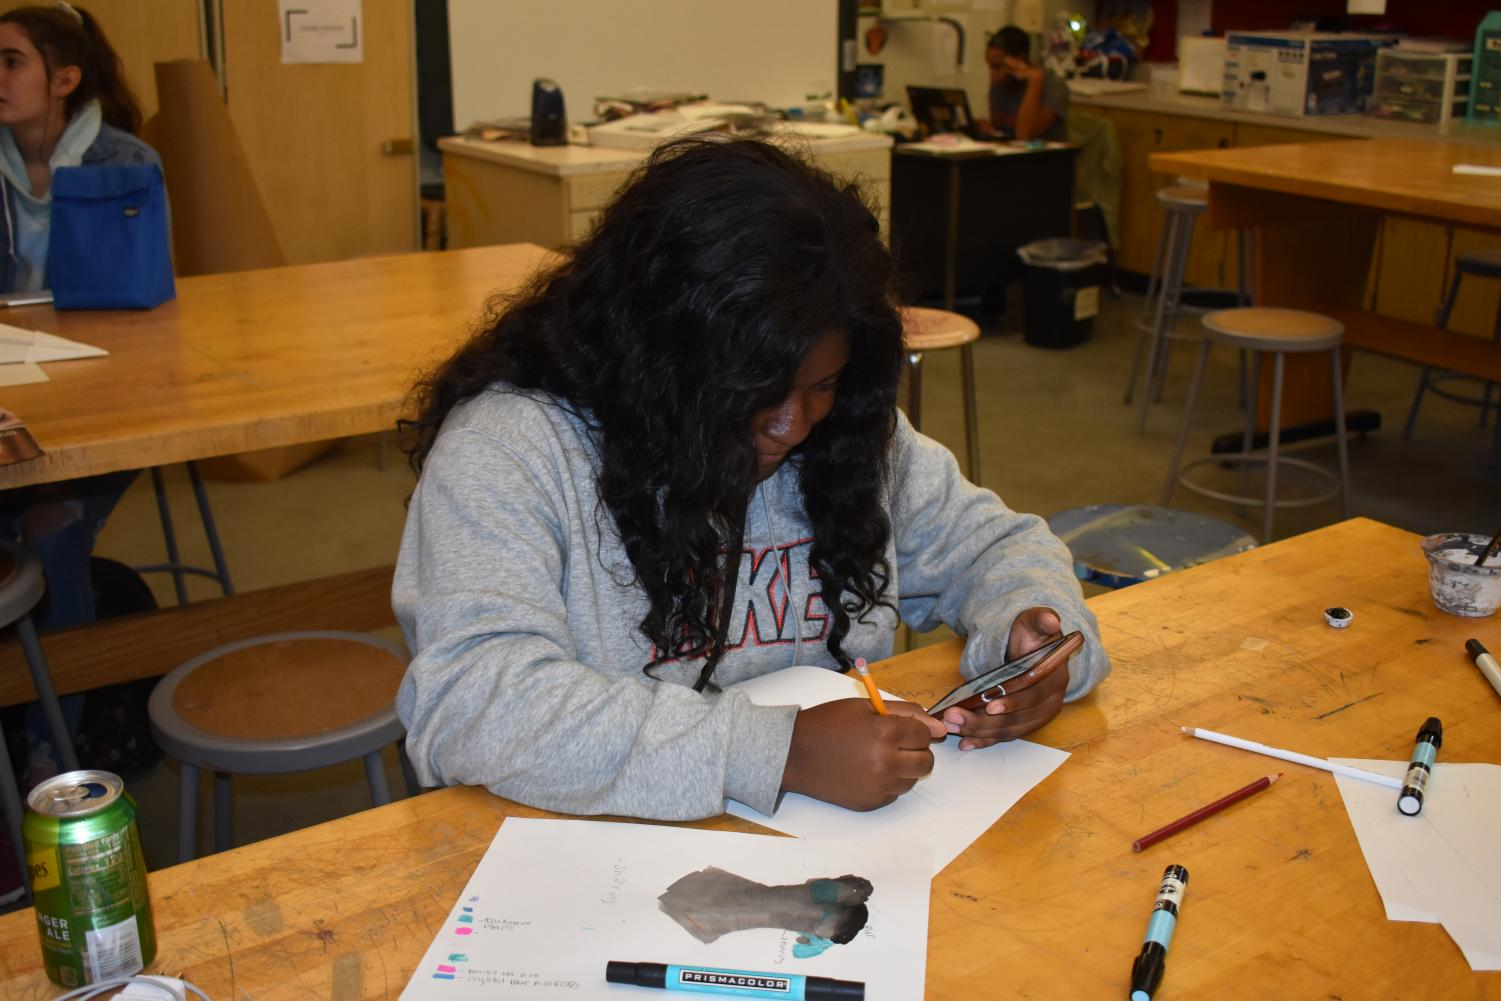 Sophomore Jayla Davis works on her design for a corset in Valerie William's Costume Tech class. The class is working on corsets as a study in clothing items specific to historical timelines.